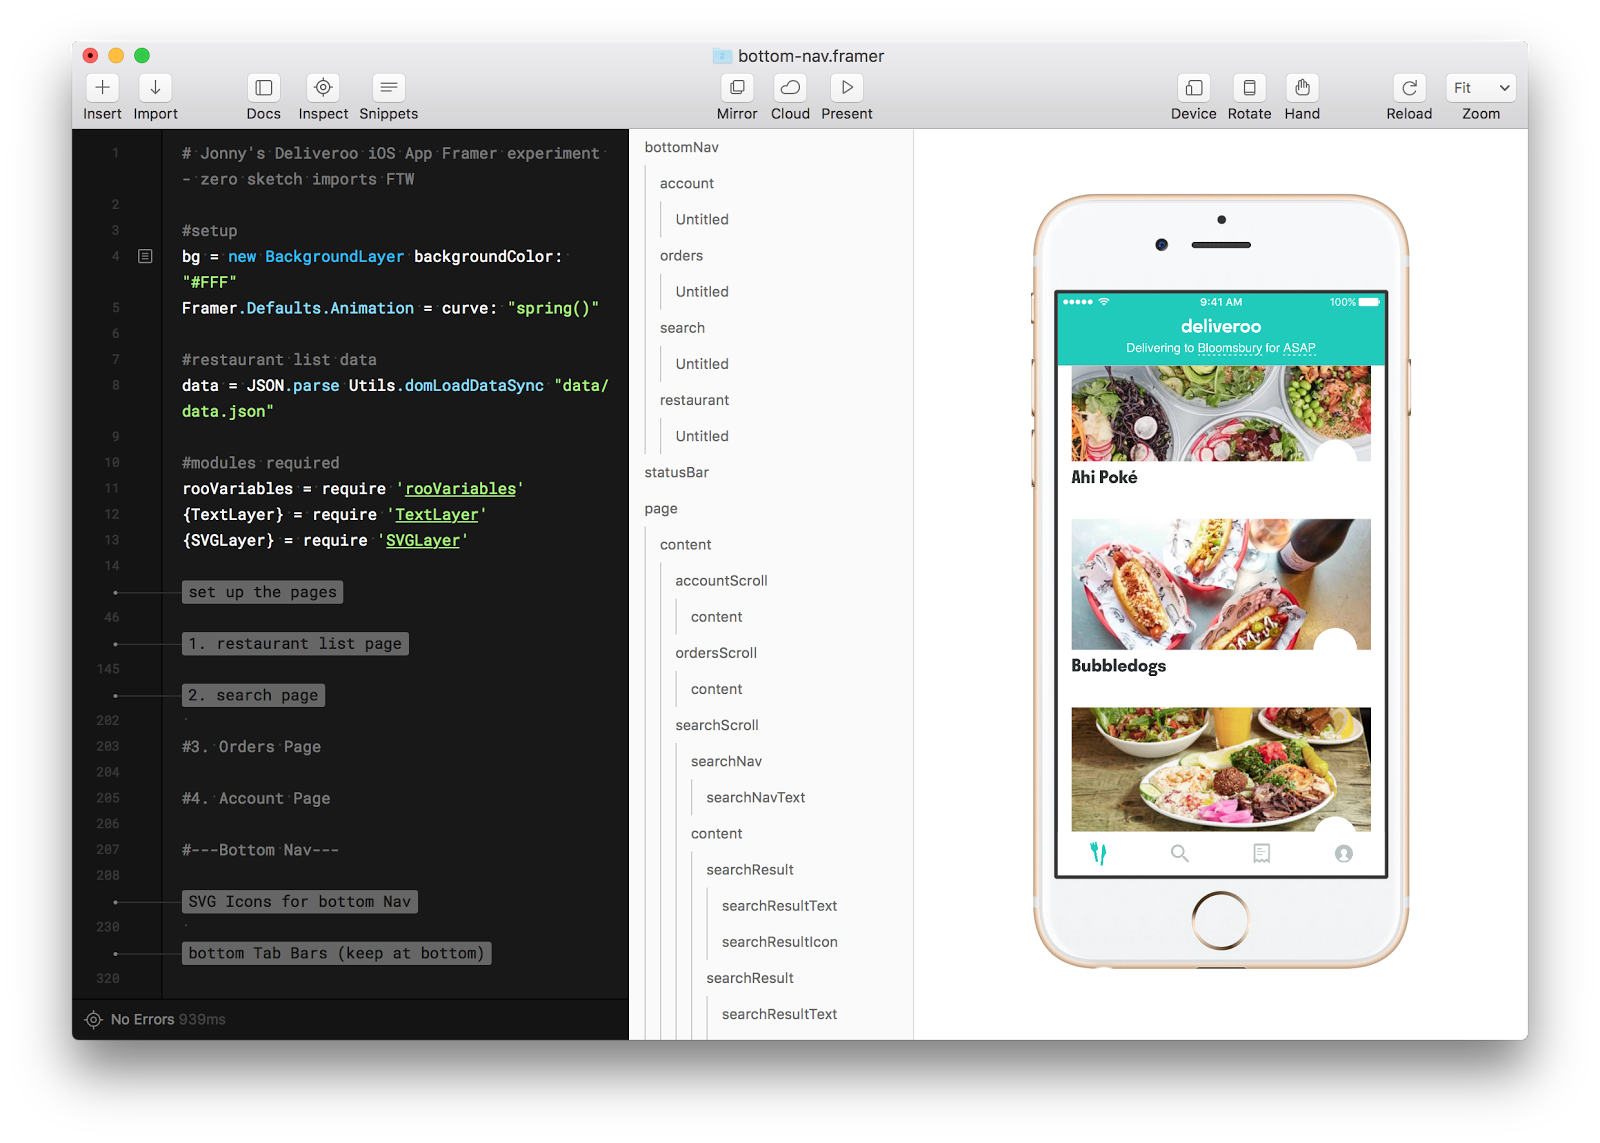 Rebuilding a version of our restaurant list with live data entirely in Framer